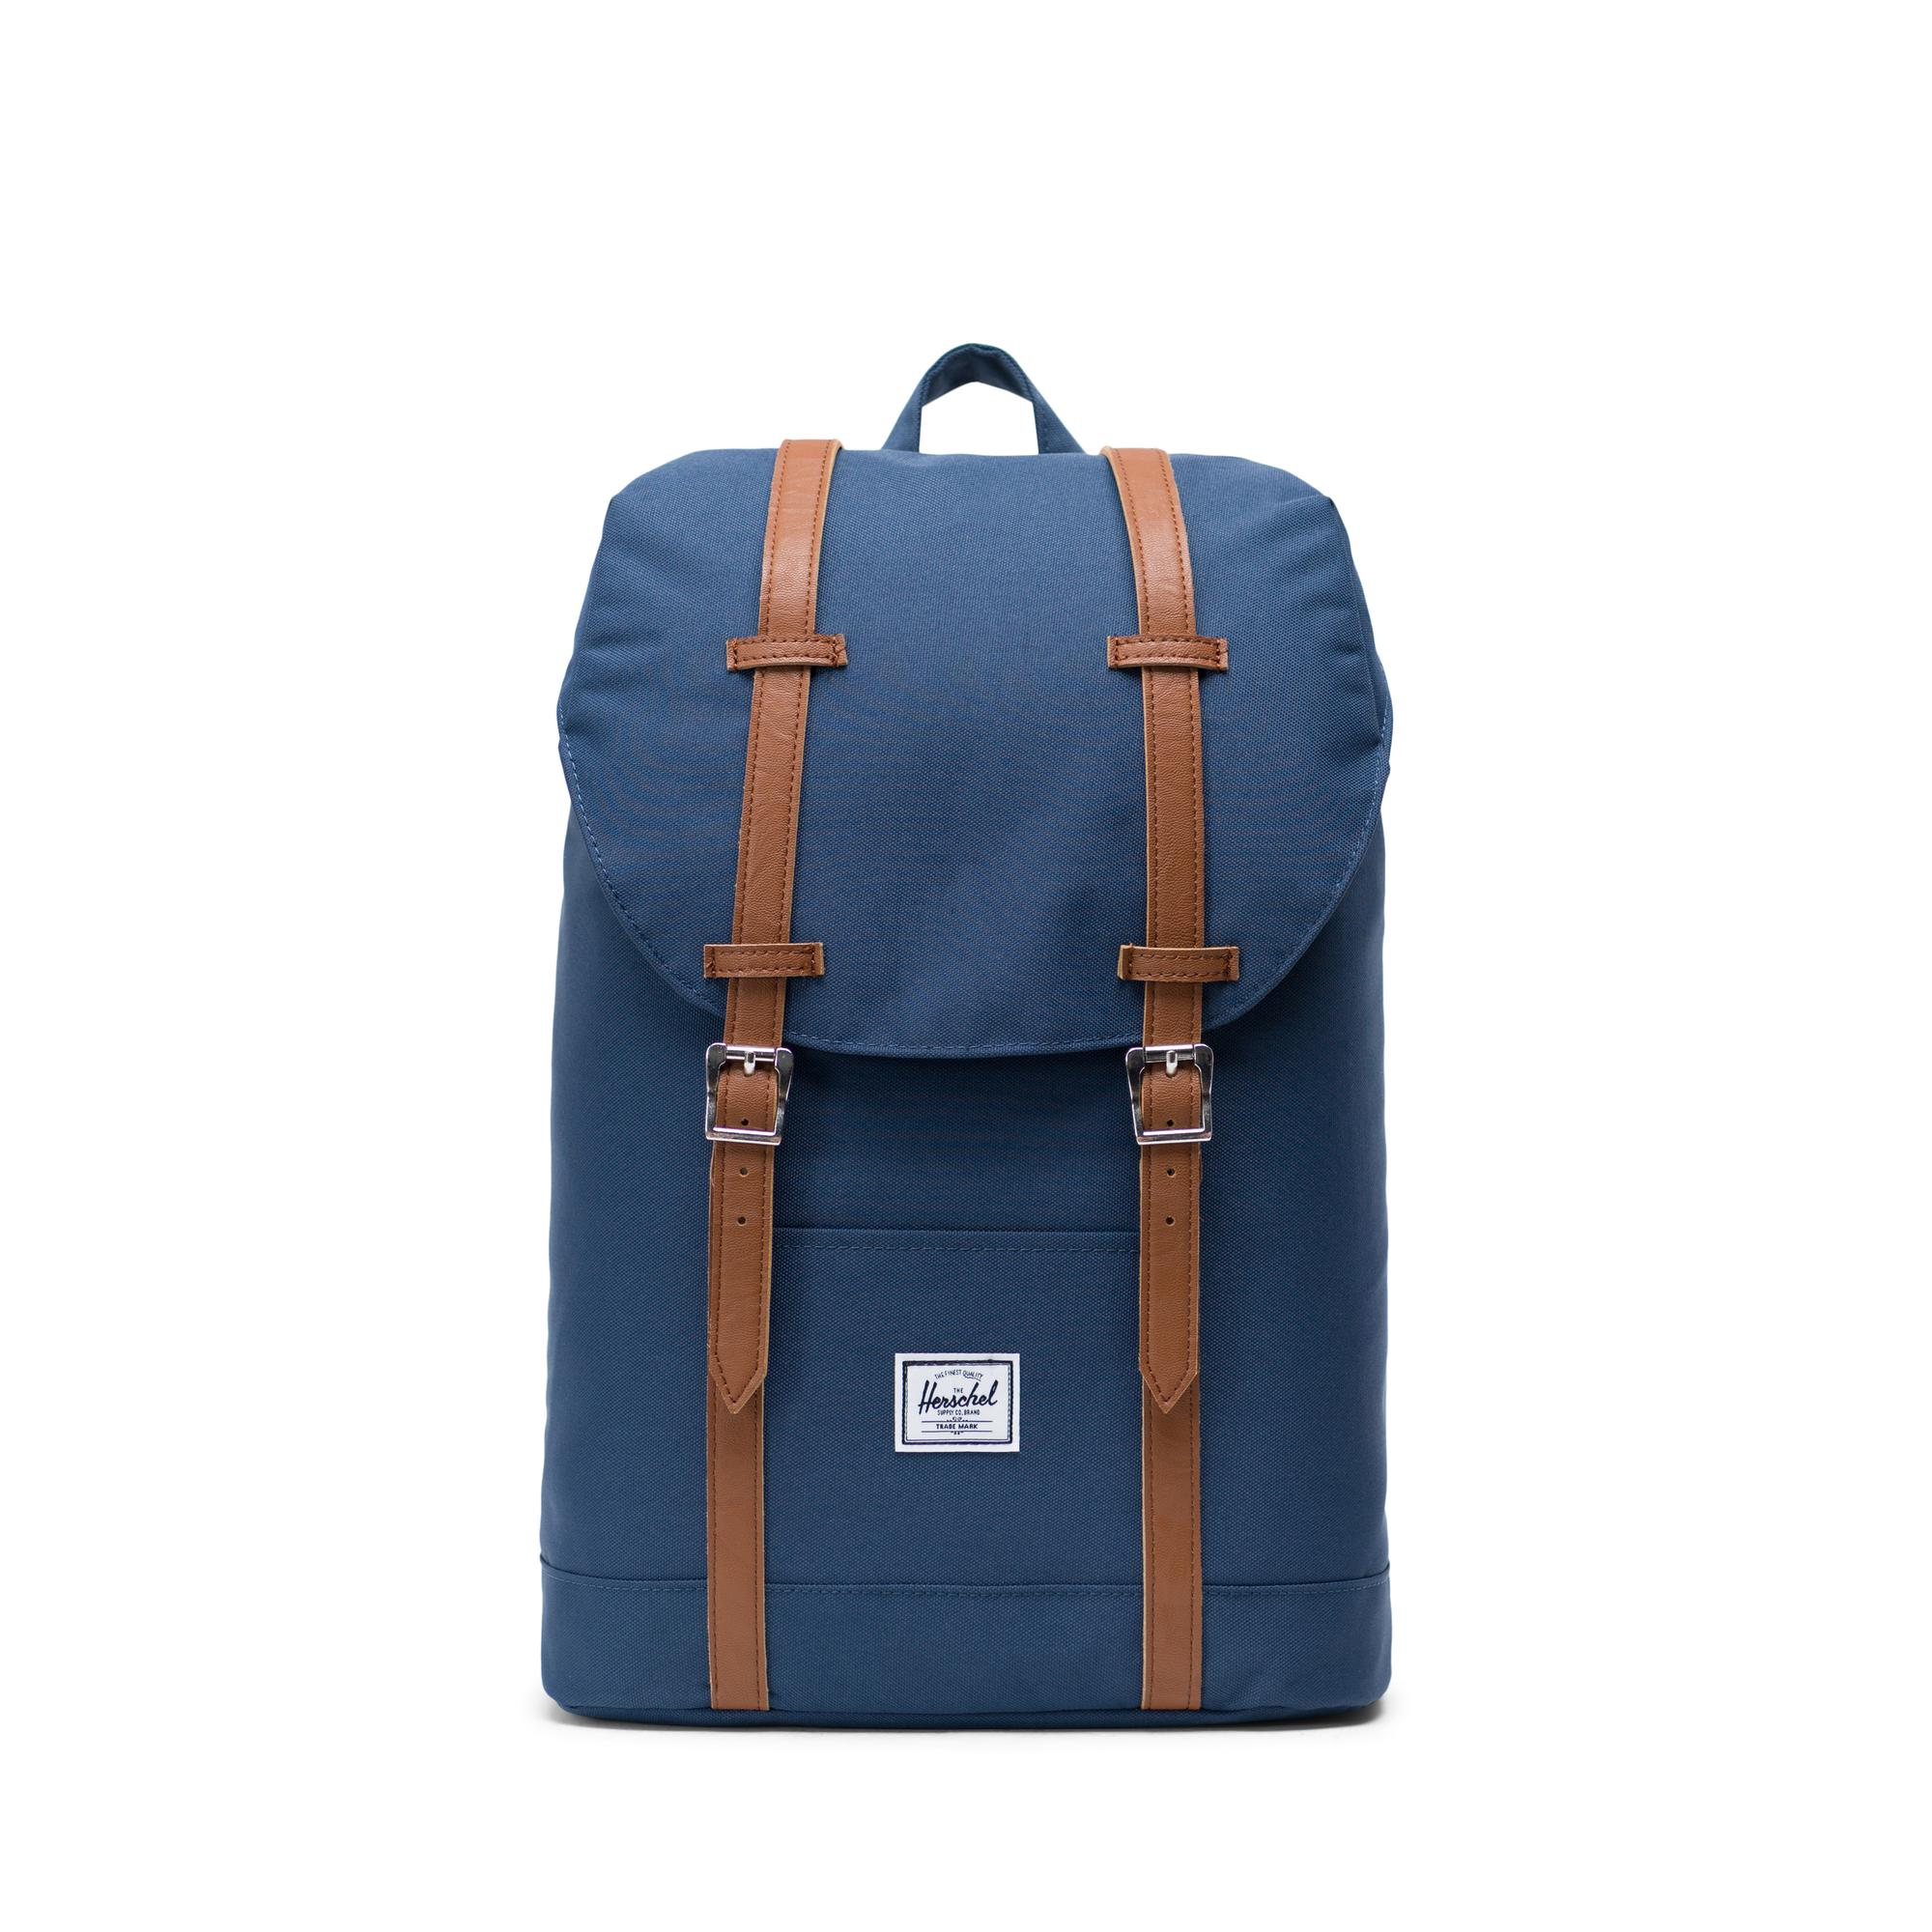 dcf97e8fdb4 Retreat Backpack Mid-Volume